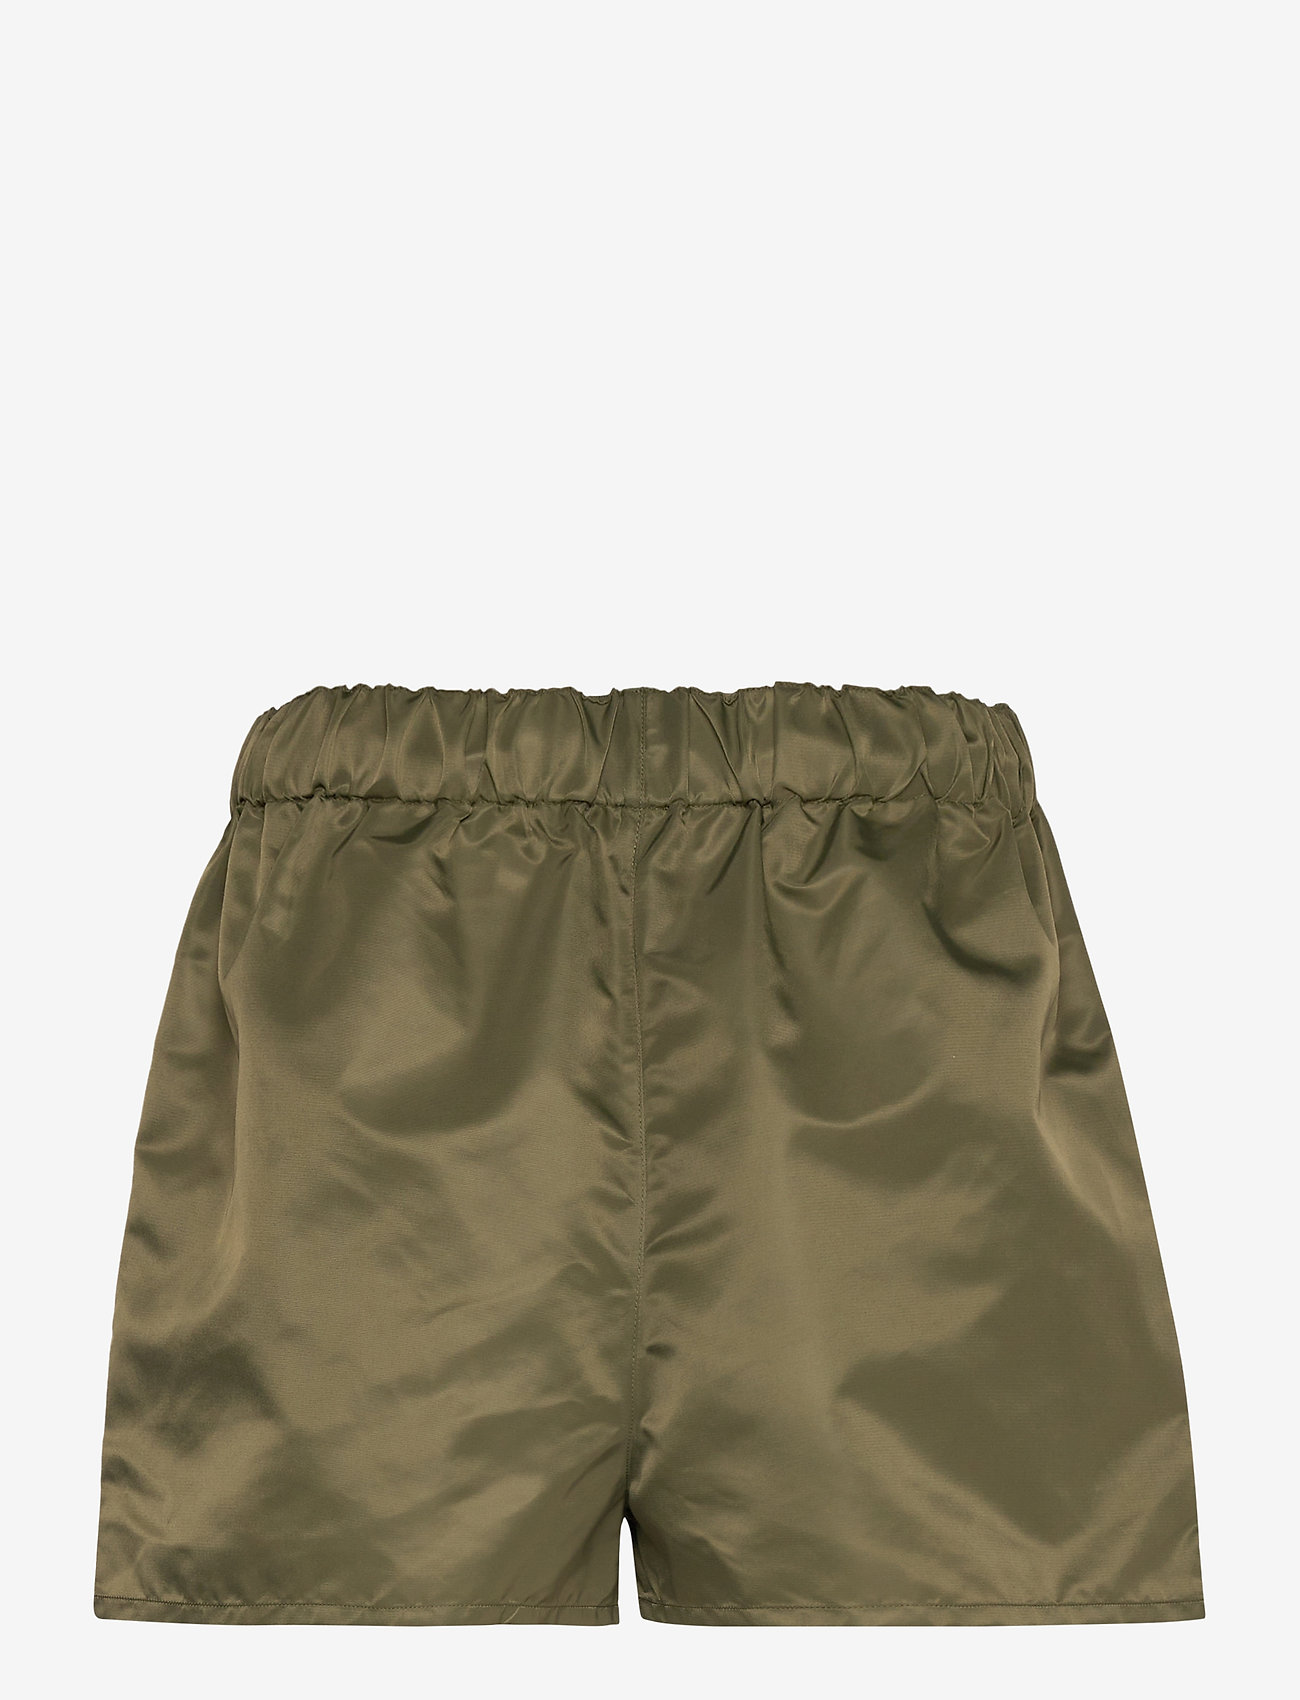 Alessio Shorts (Army) (60 €) - Lovechild 1979 So177